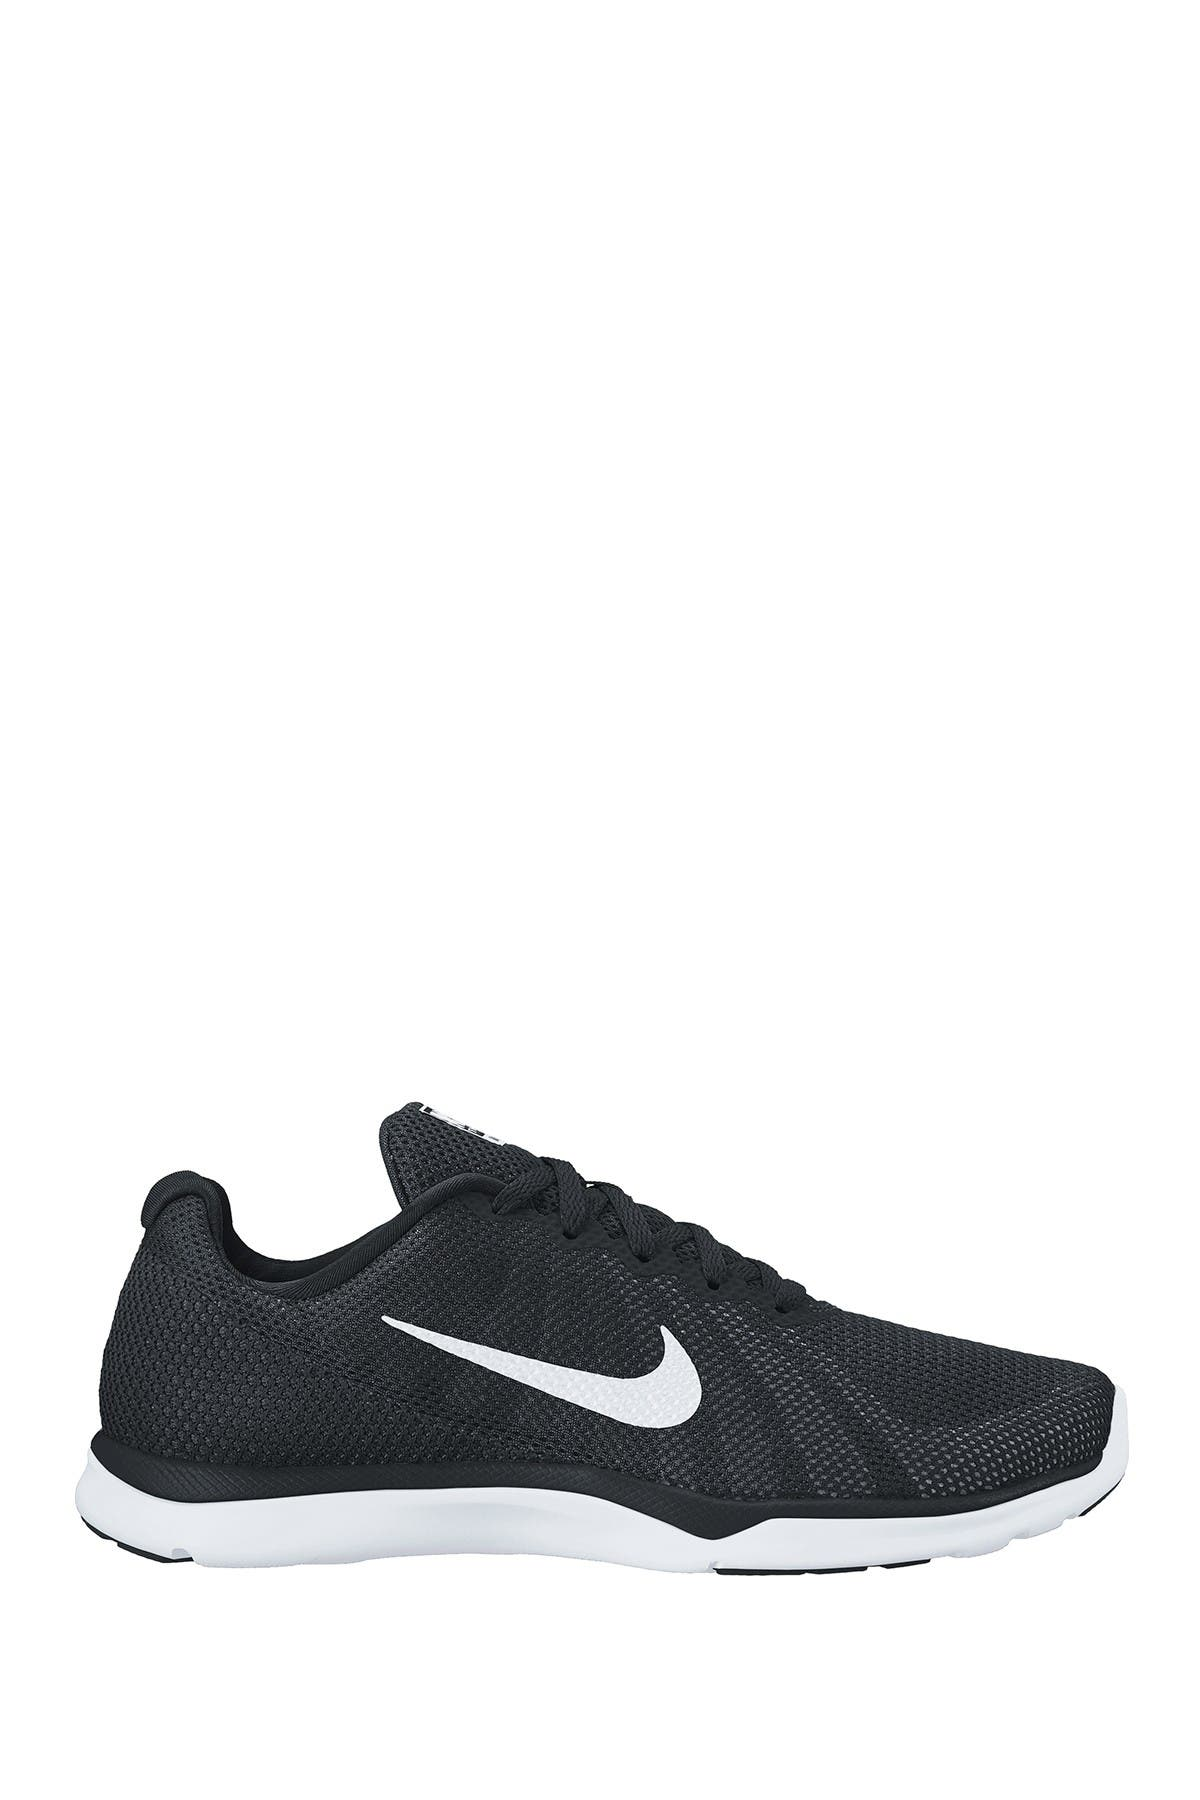 Image of Nike In-Season TR6 Trainer Sneaker